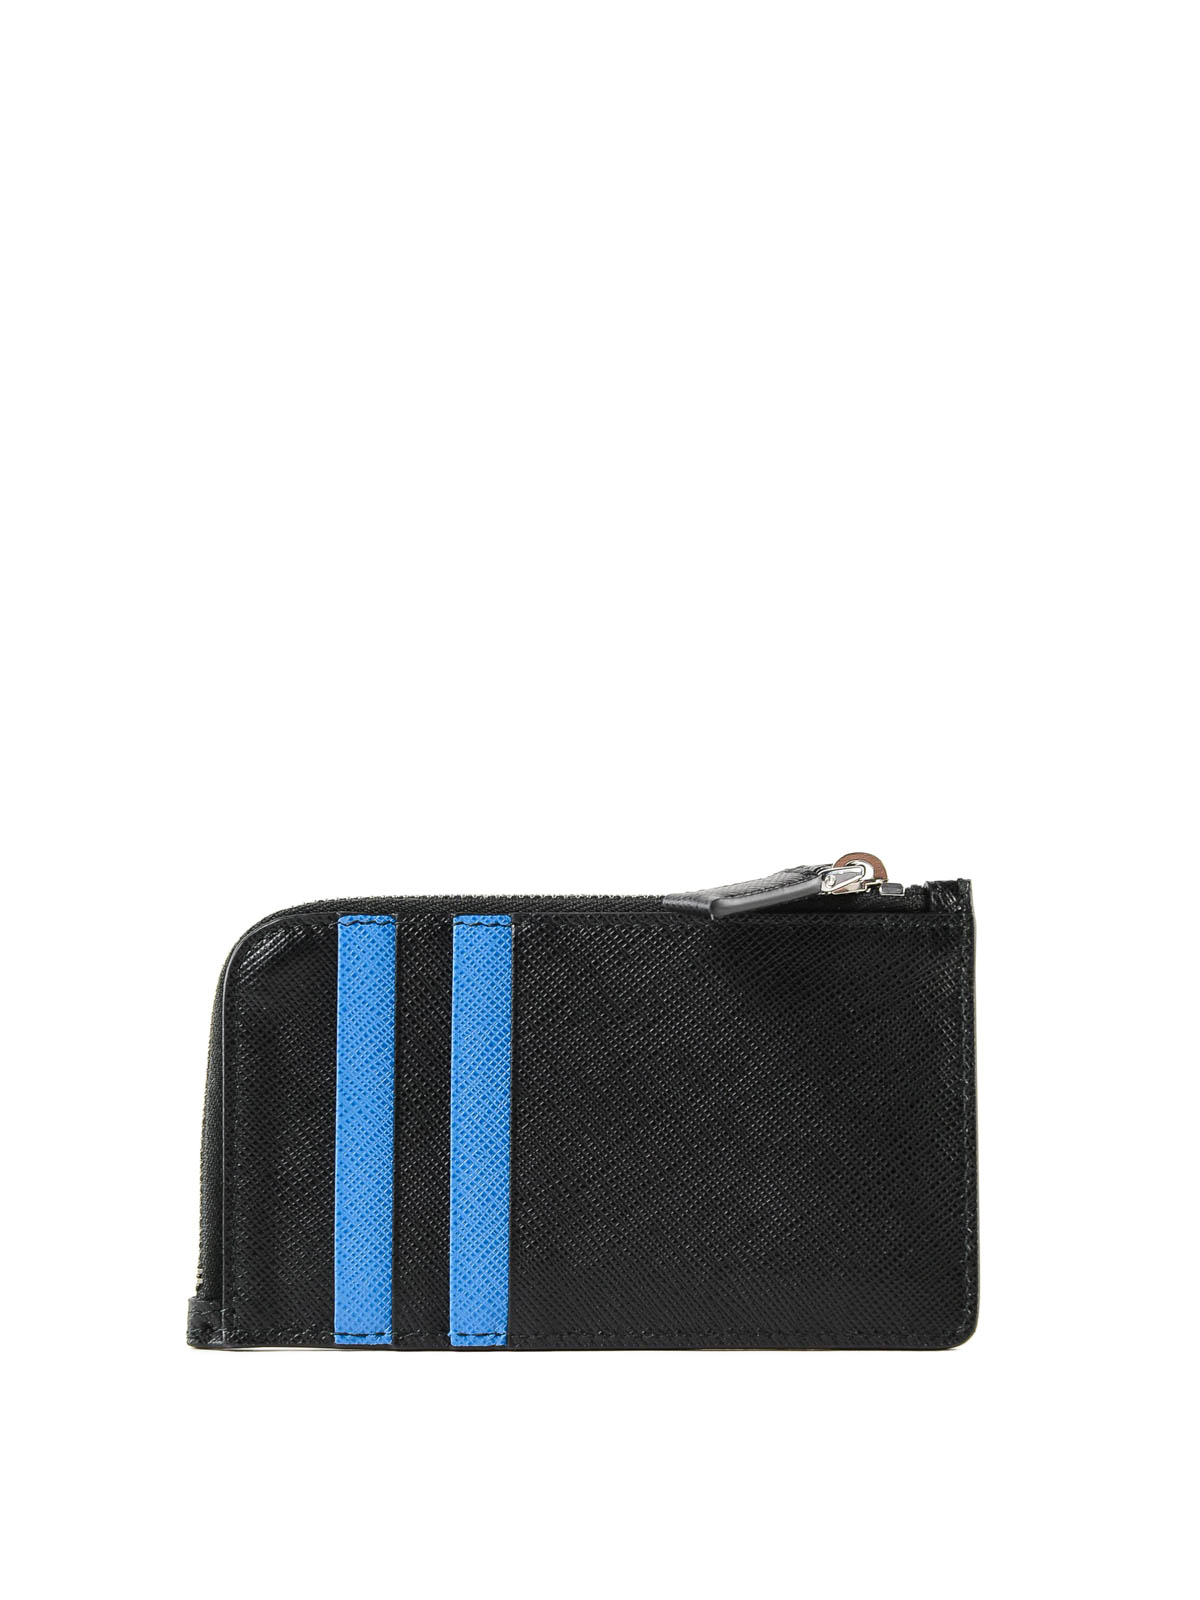 e893f14db991 PRADA: wallets & purses online - Black and blue saffiano leather card holder